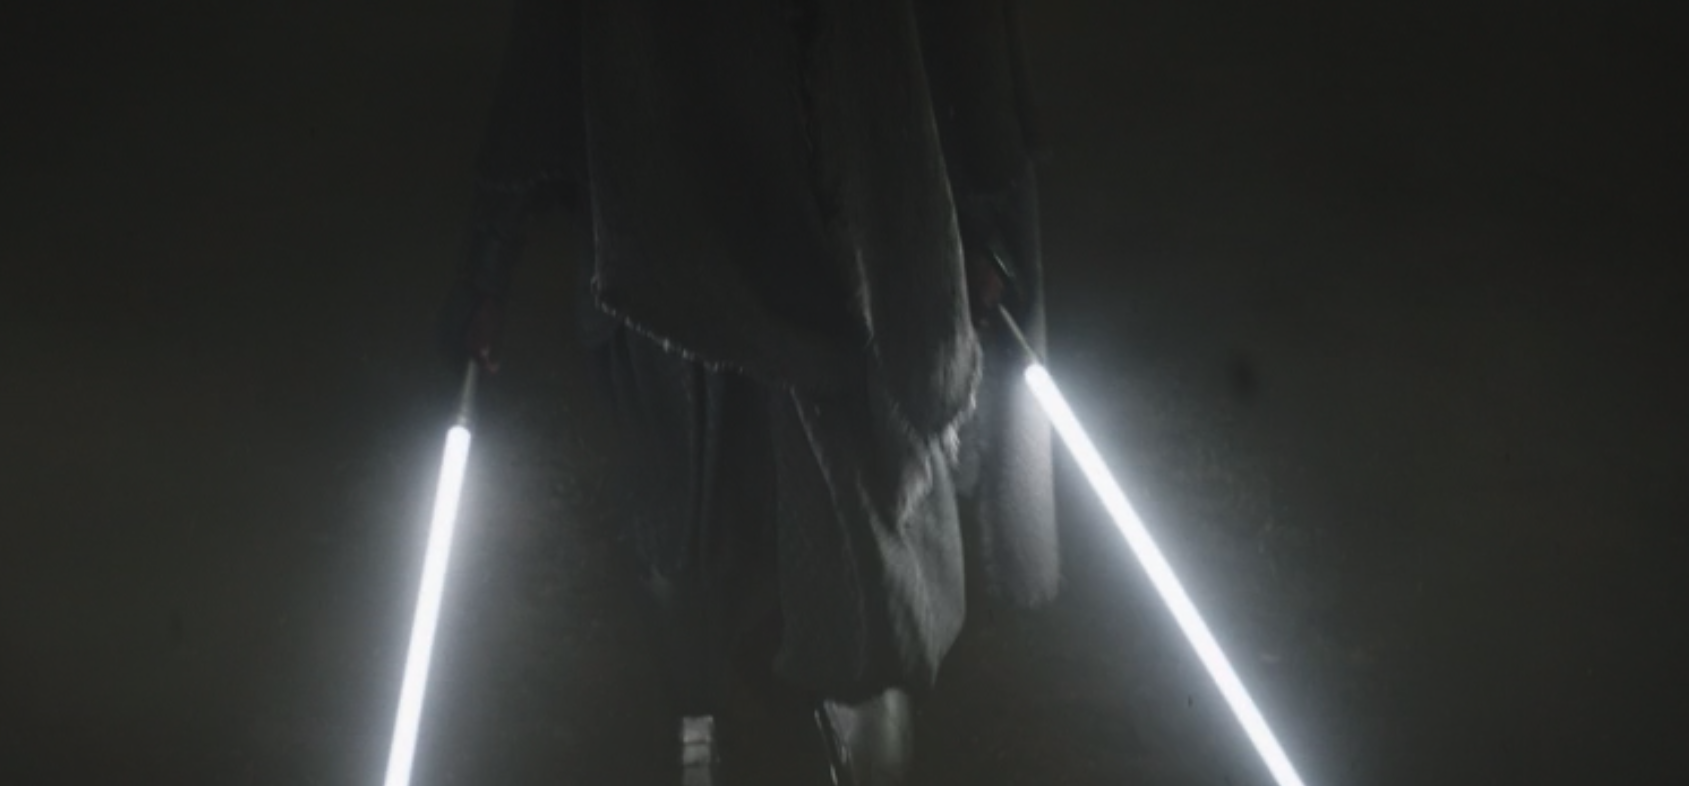 A pair of white lightsabers